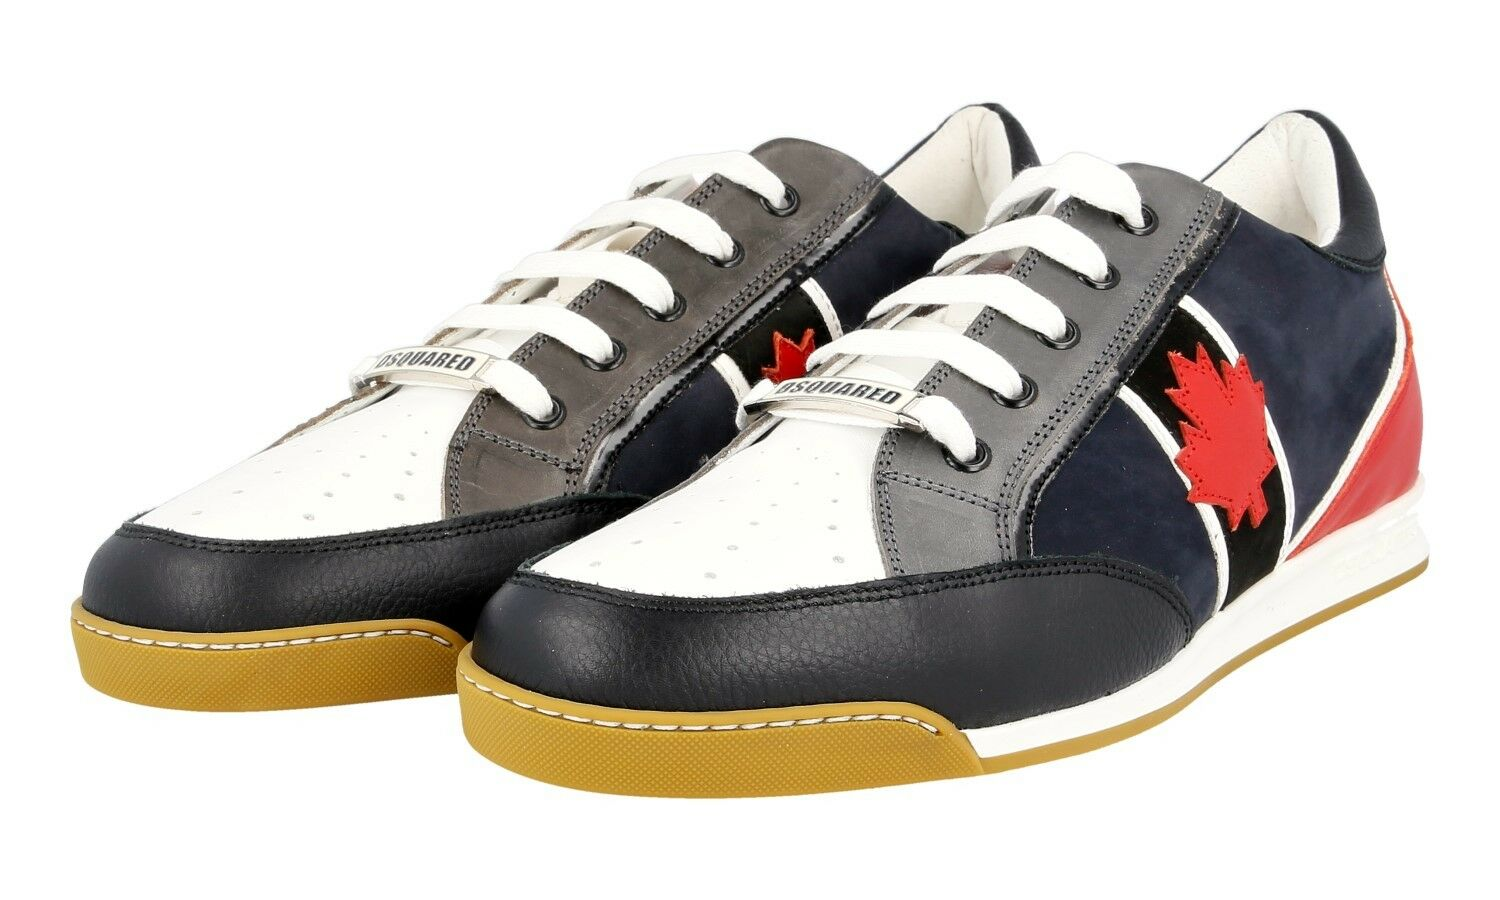 AUTHENTIC LUXURY DSQUARED SNEAKERS SHOES SN104 NEW 42